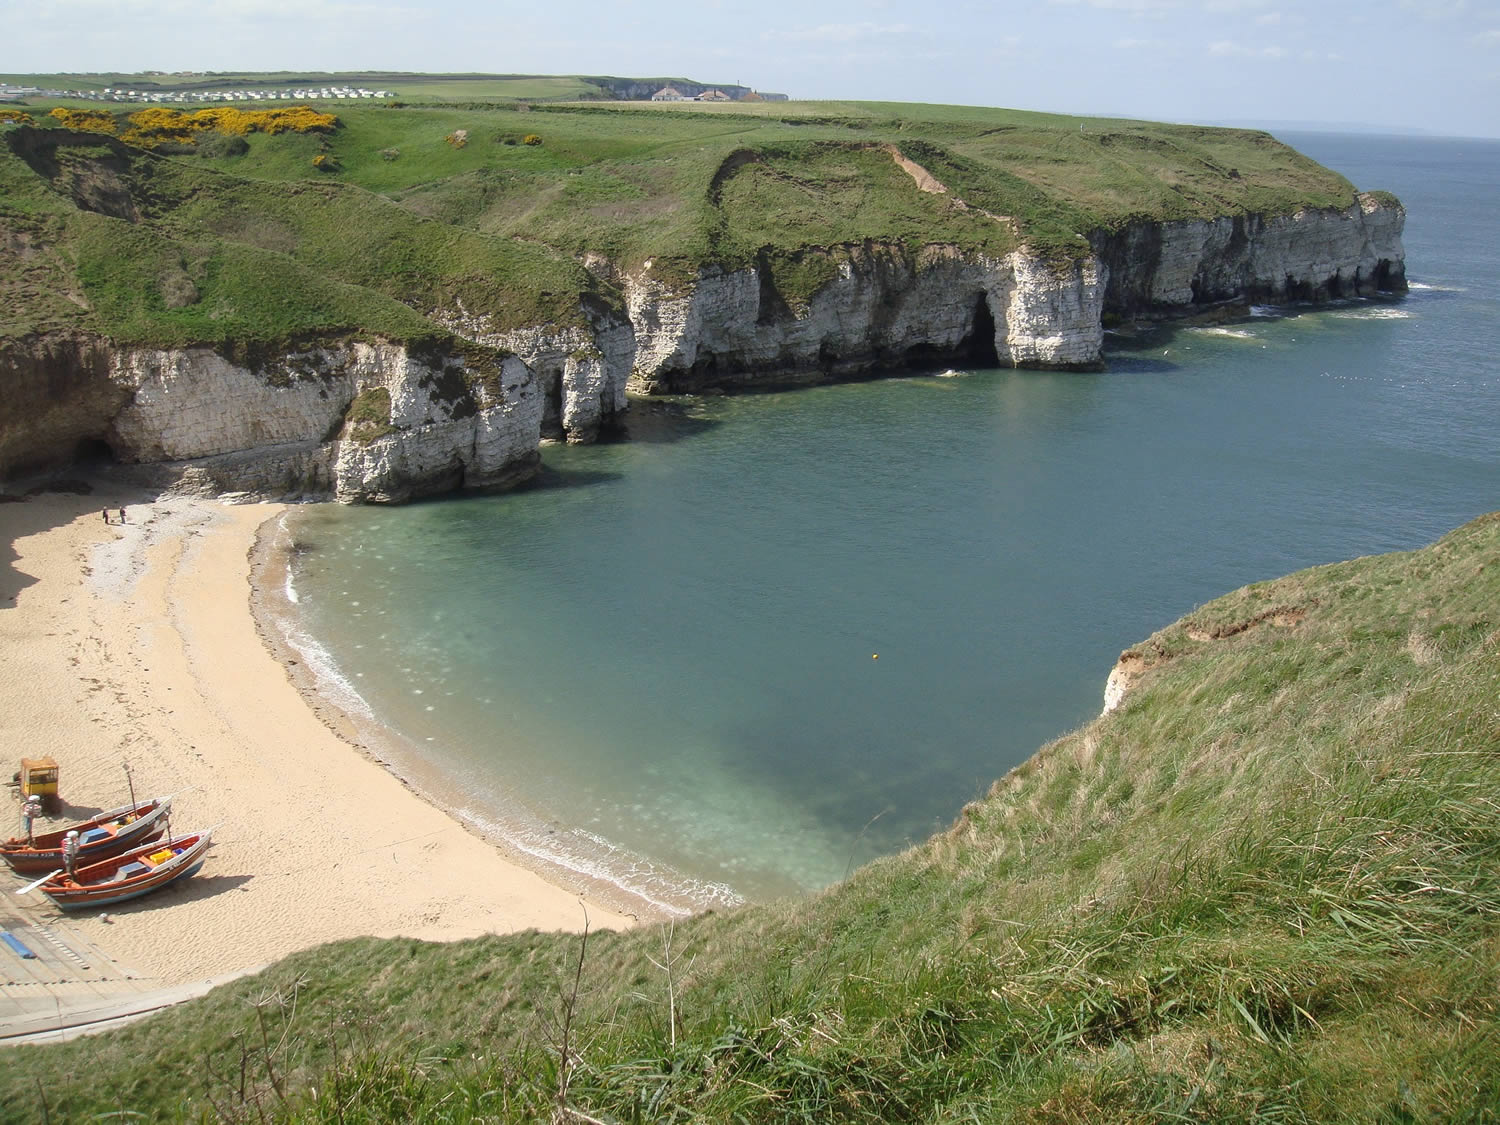 Flamborough Cliffs - 1 hour